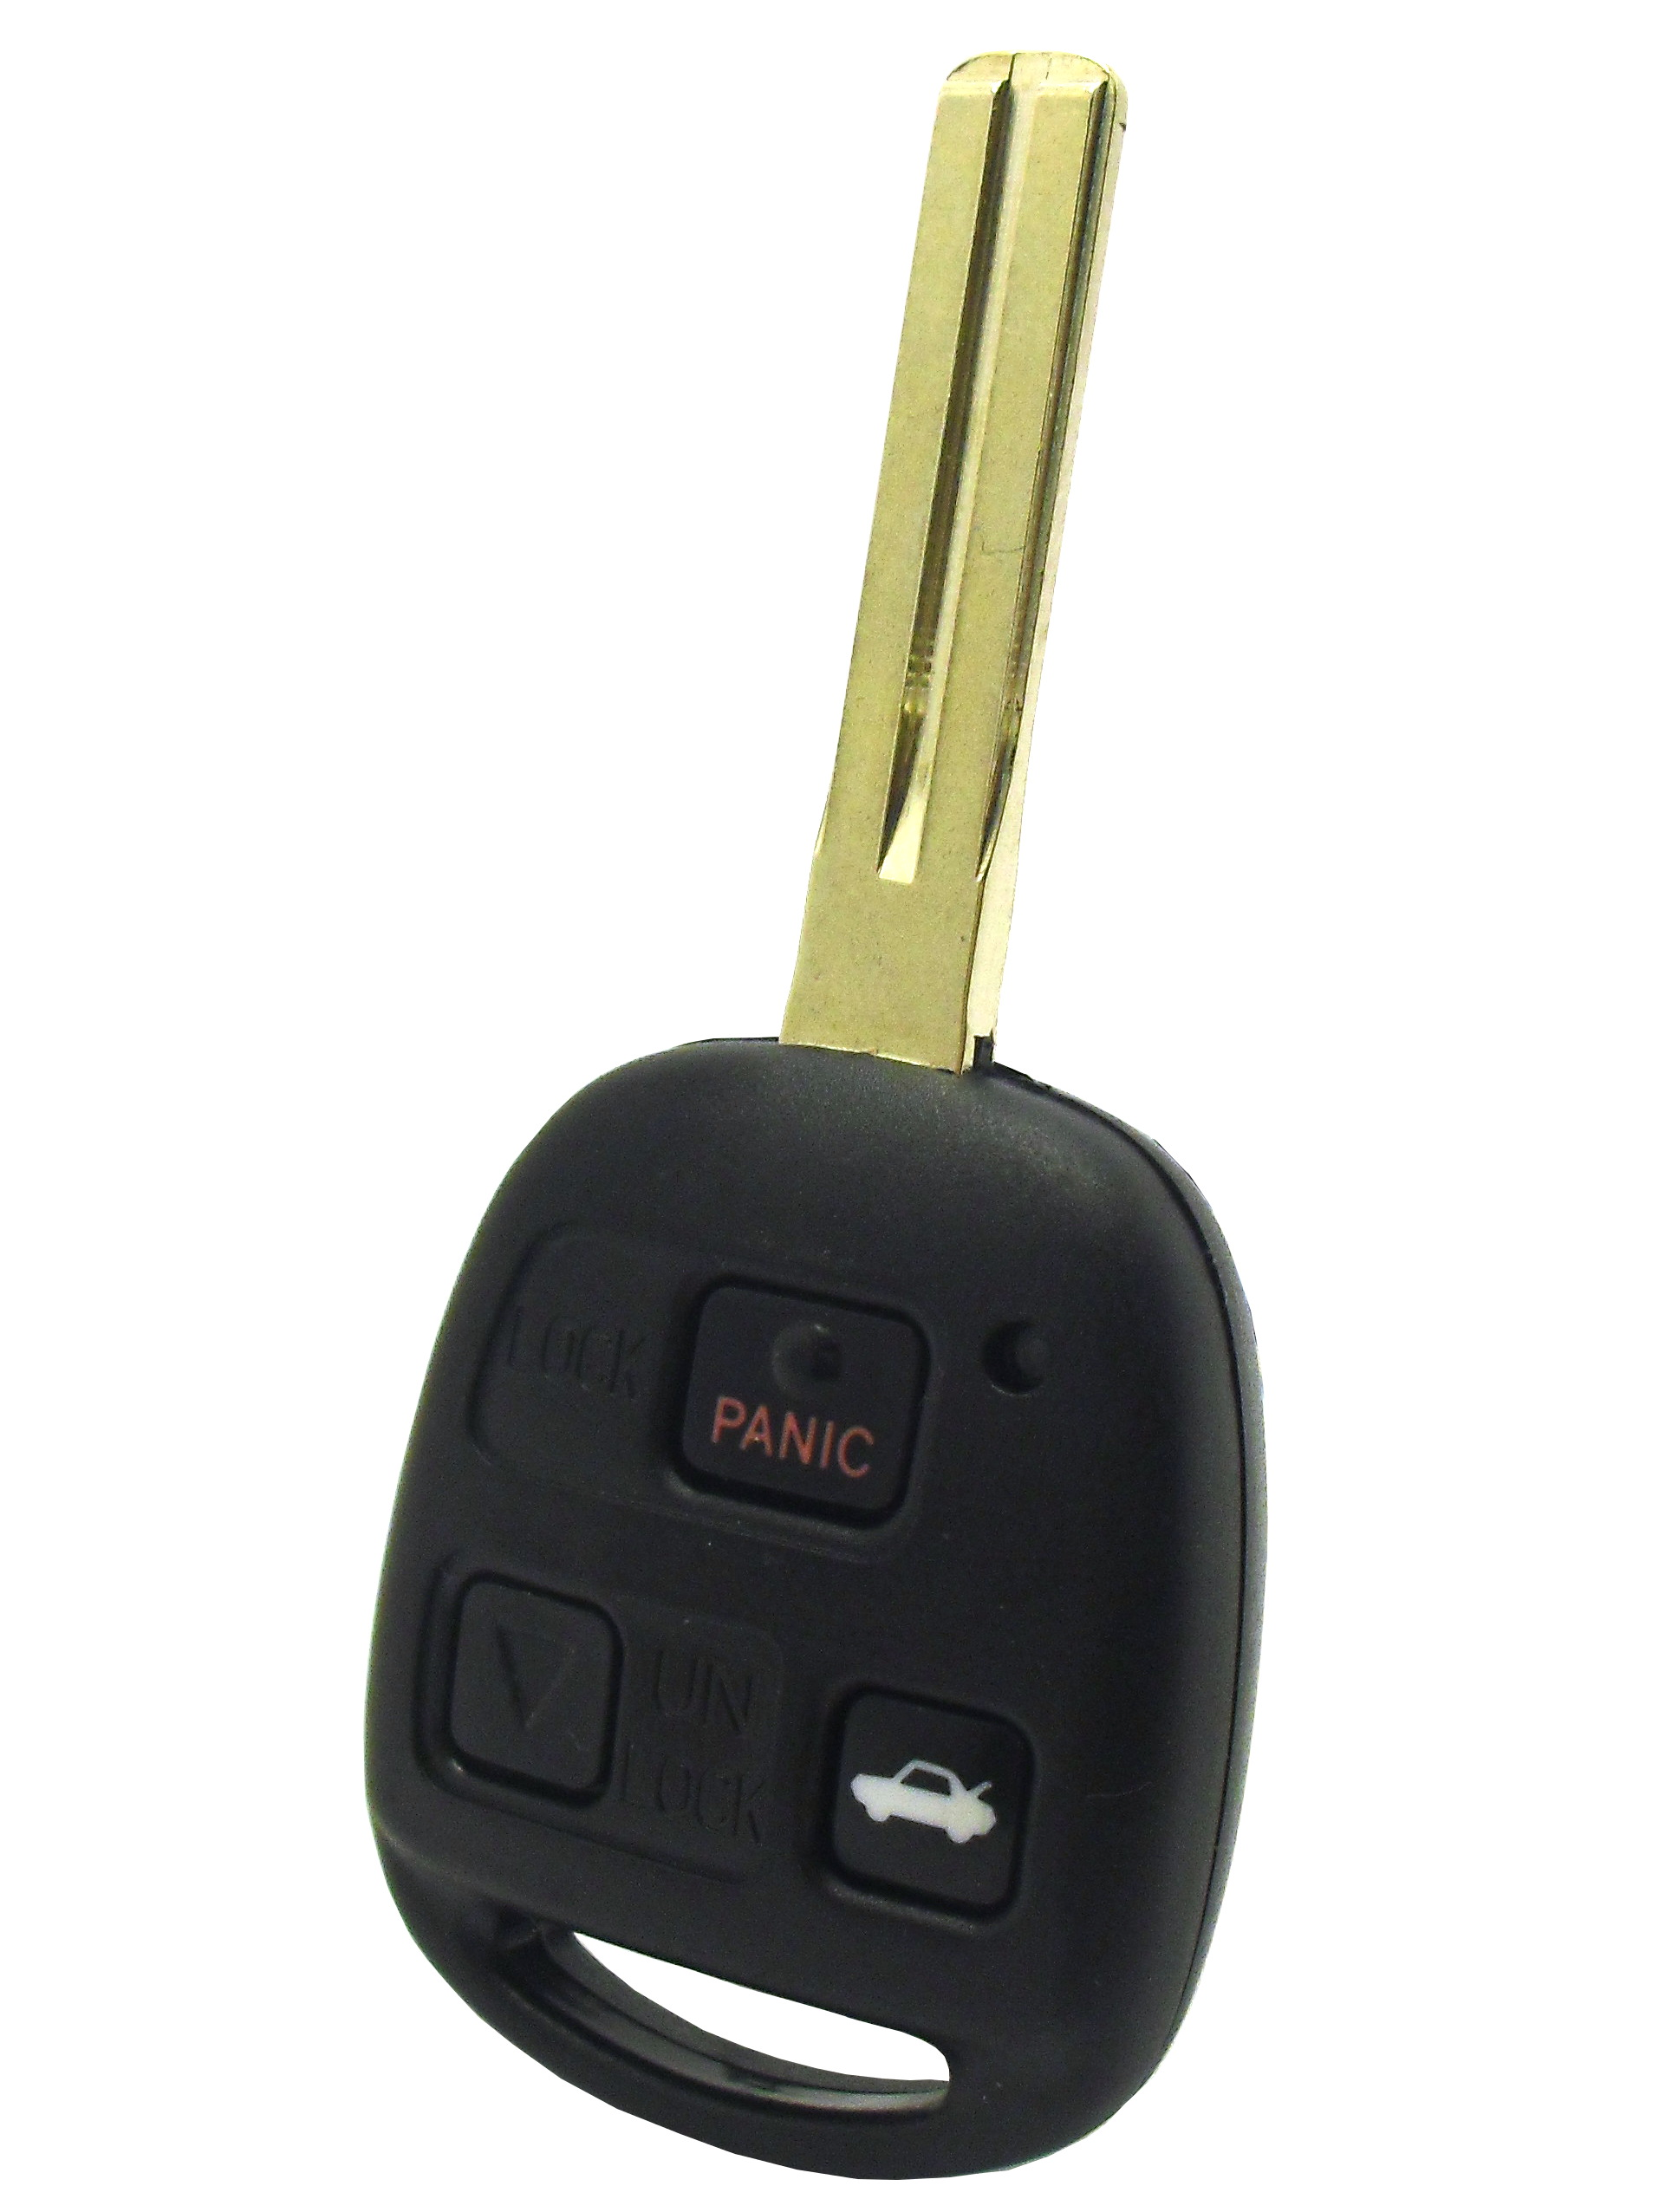 Lexus Remote Head Key Combo - 3 Button